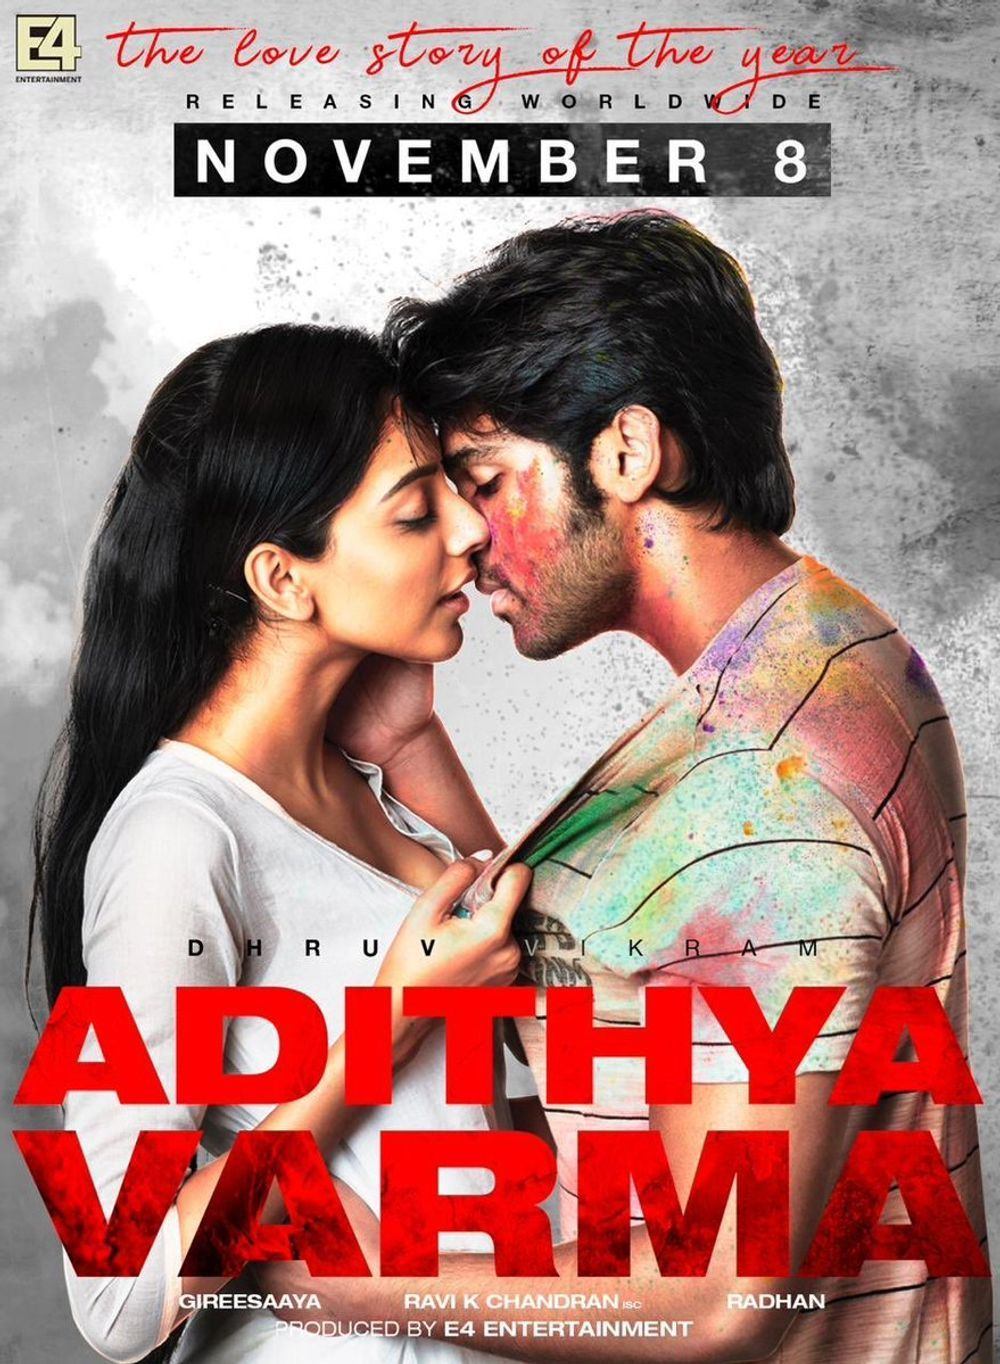 Adithya Varma Movie Latest HD Photos, Posters & Wallpapers Download (1080p, 4K) (74058) - Adithya Varma, Dhruv Vikram